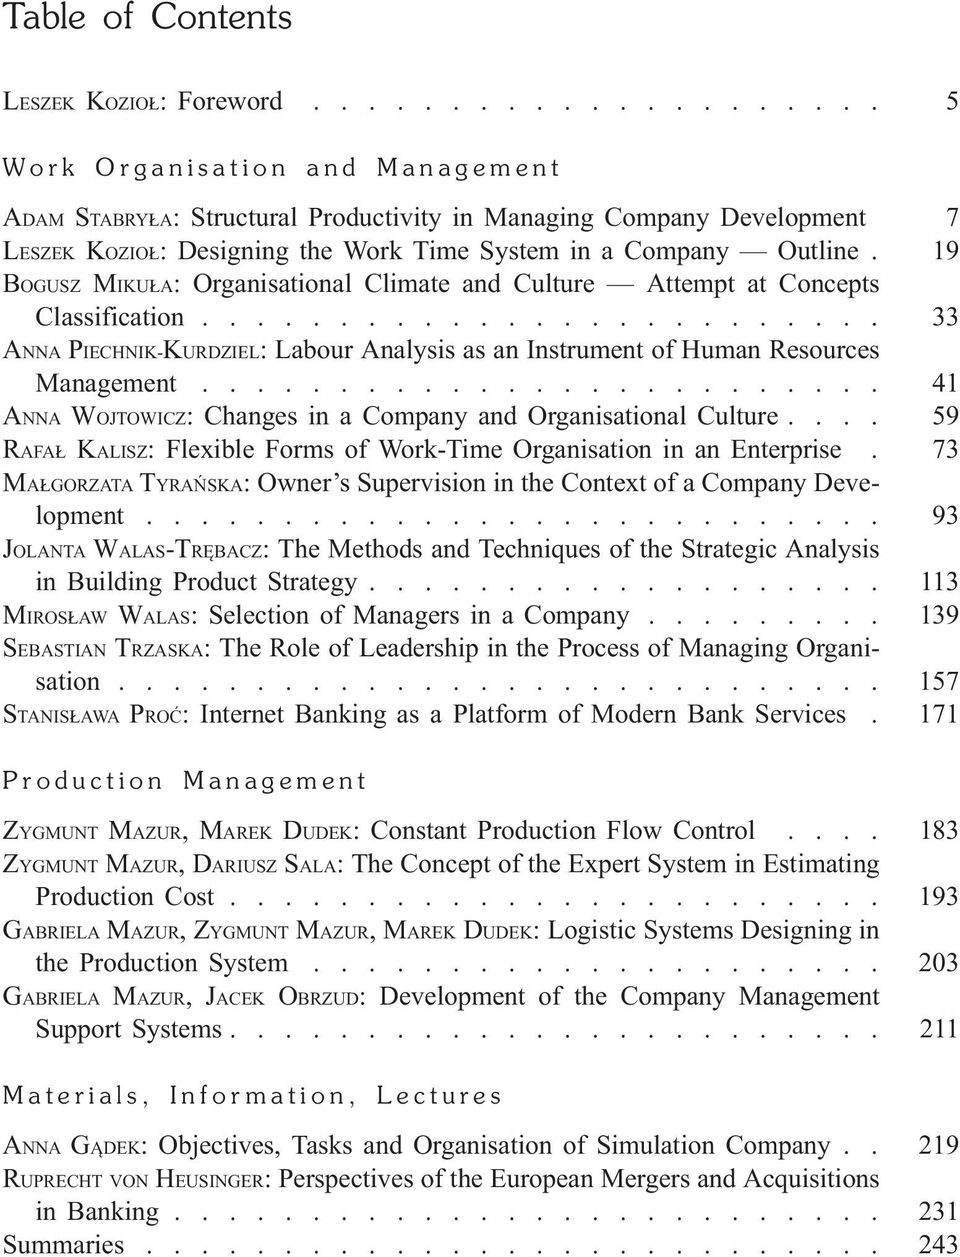 19 BOGUSZ MIKU A: Organisational Climate and Culture Attempt at Concepts Classification......................... 33 ANNA PIECHNIK-KURDZIEL: Labour Analysis as an Instrument of Human Resources Management.